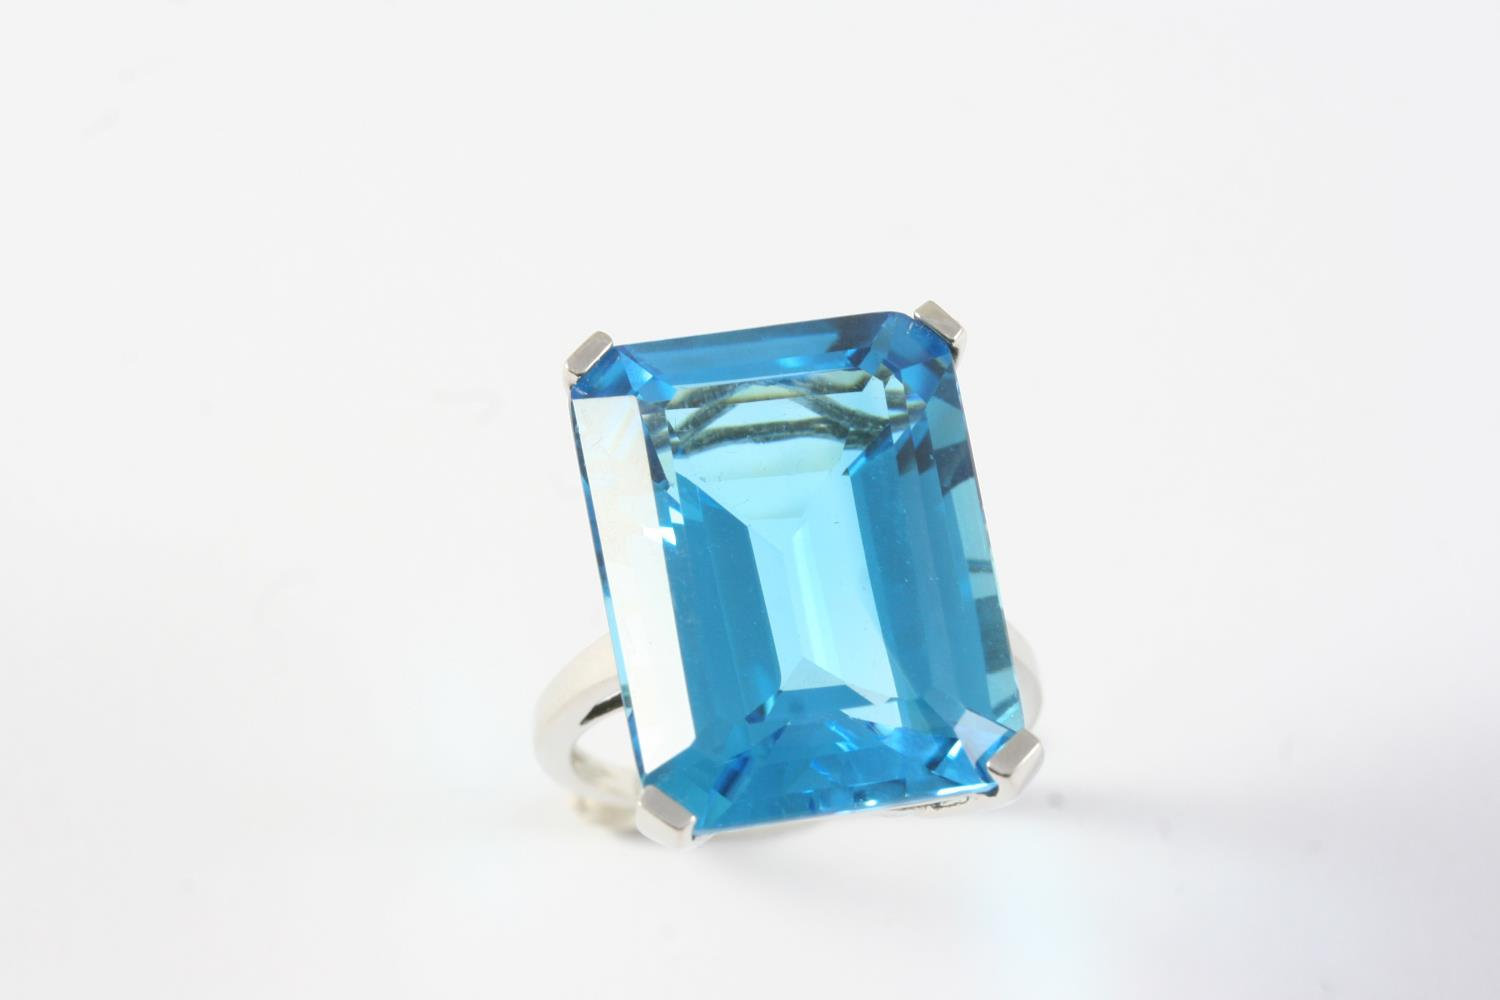 A BLUE TOPAZ SINGLE STONE RING the step-cut blue topaz weighs approximatey 25.0 carats is set in